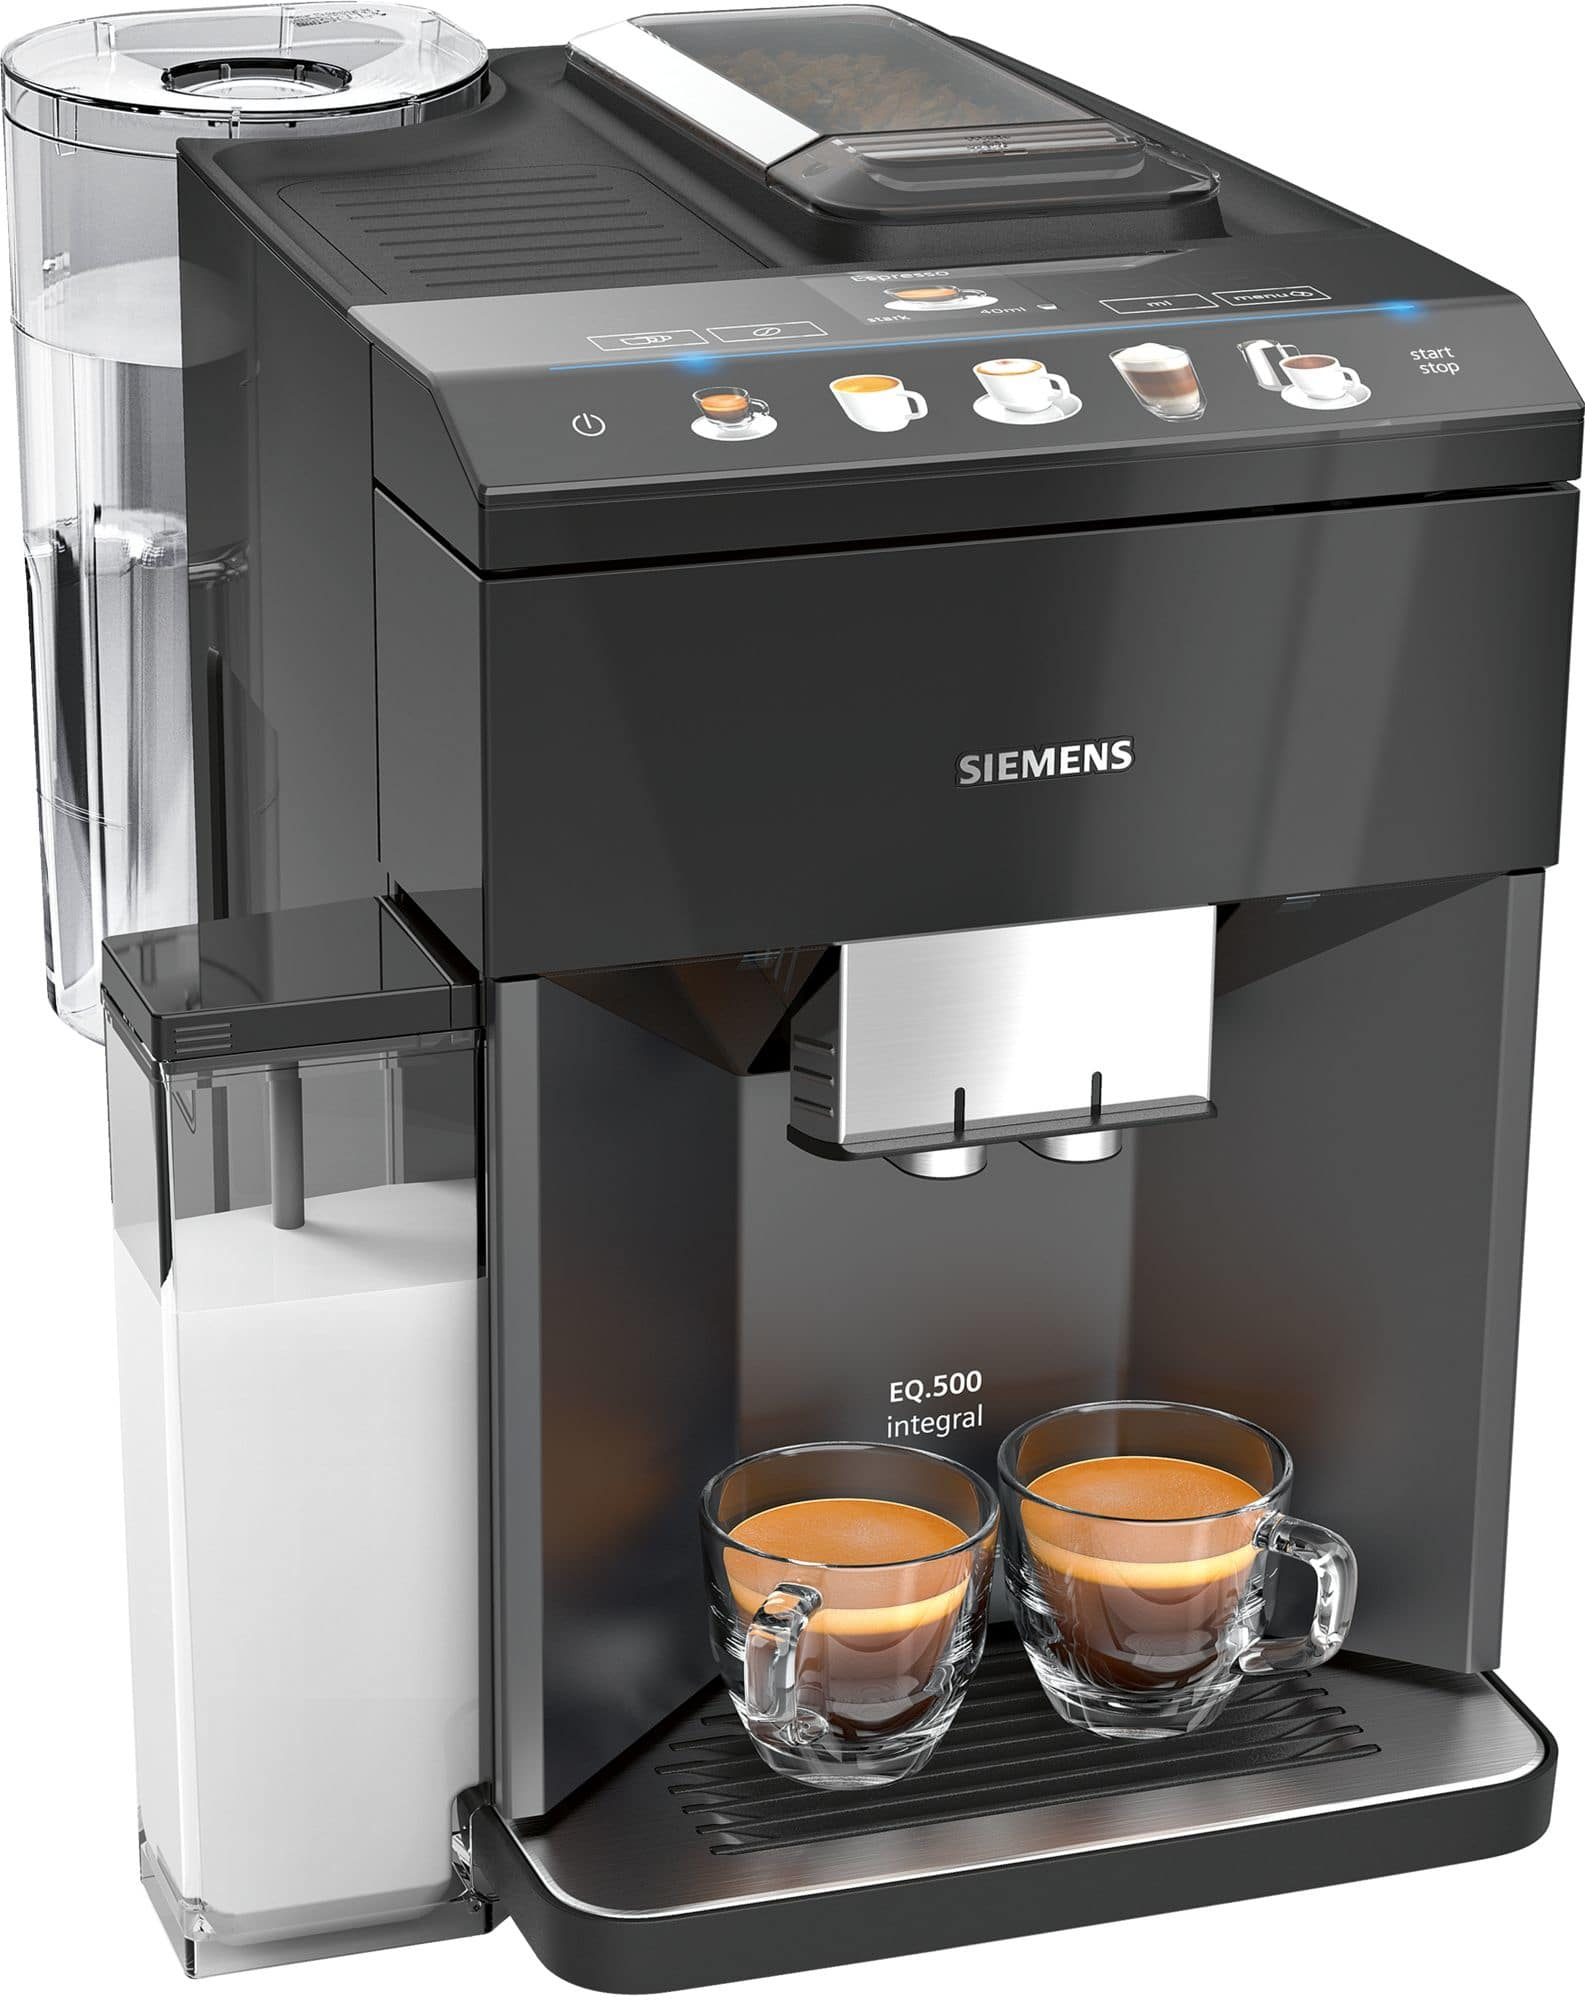 Siemens TQ505DF9 Kaffeevollautomat 15.0 bar 1,7l 270g coffeeSelect Display für 799,00 Euro